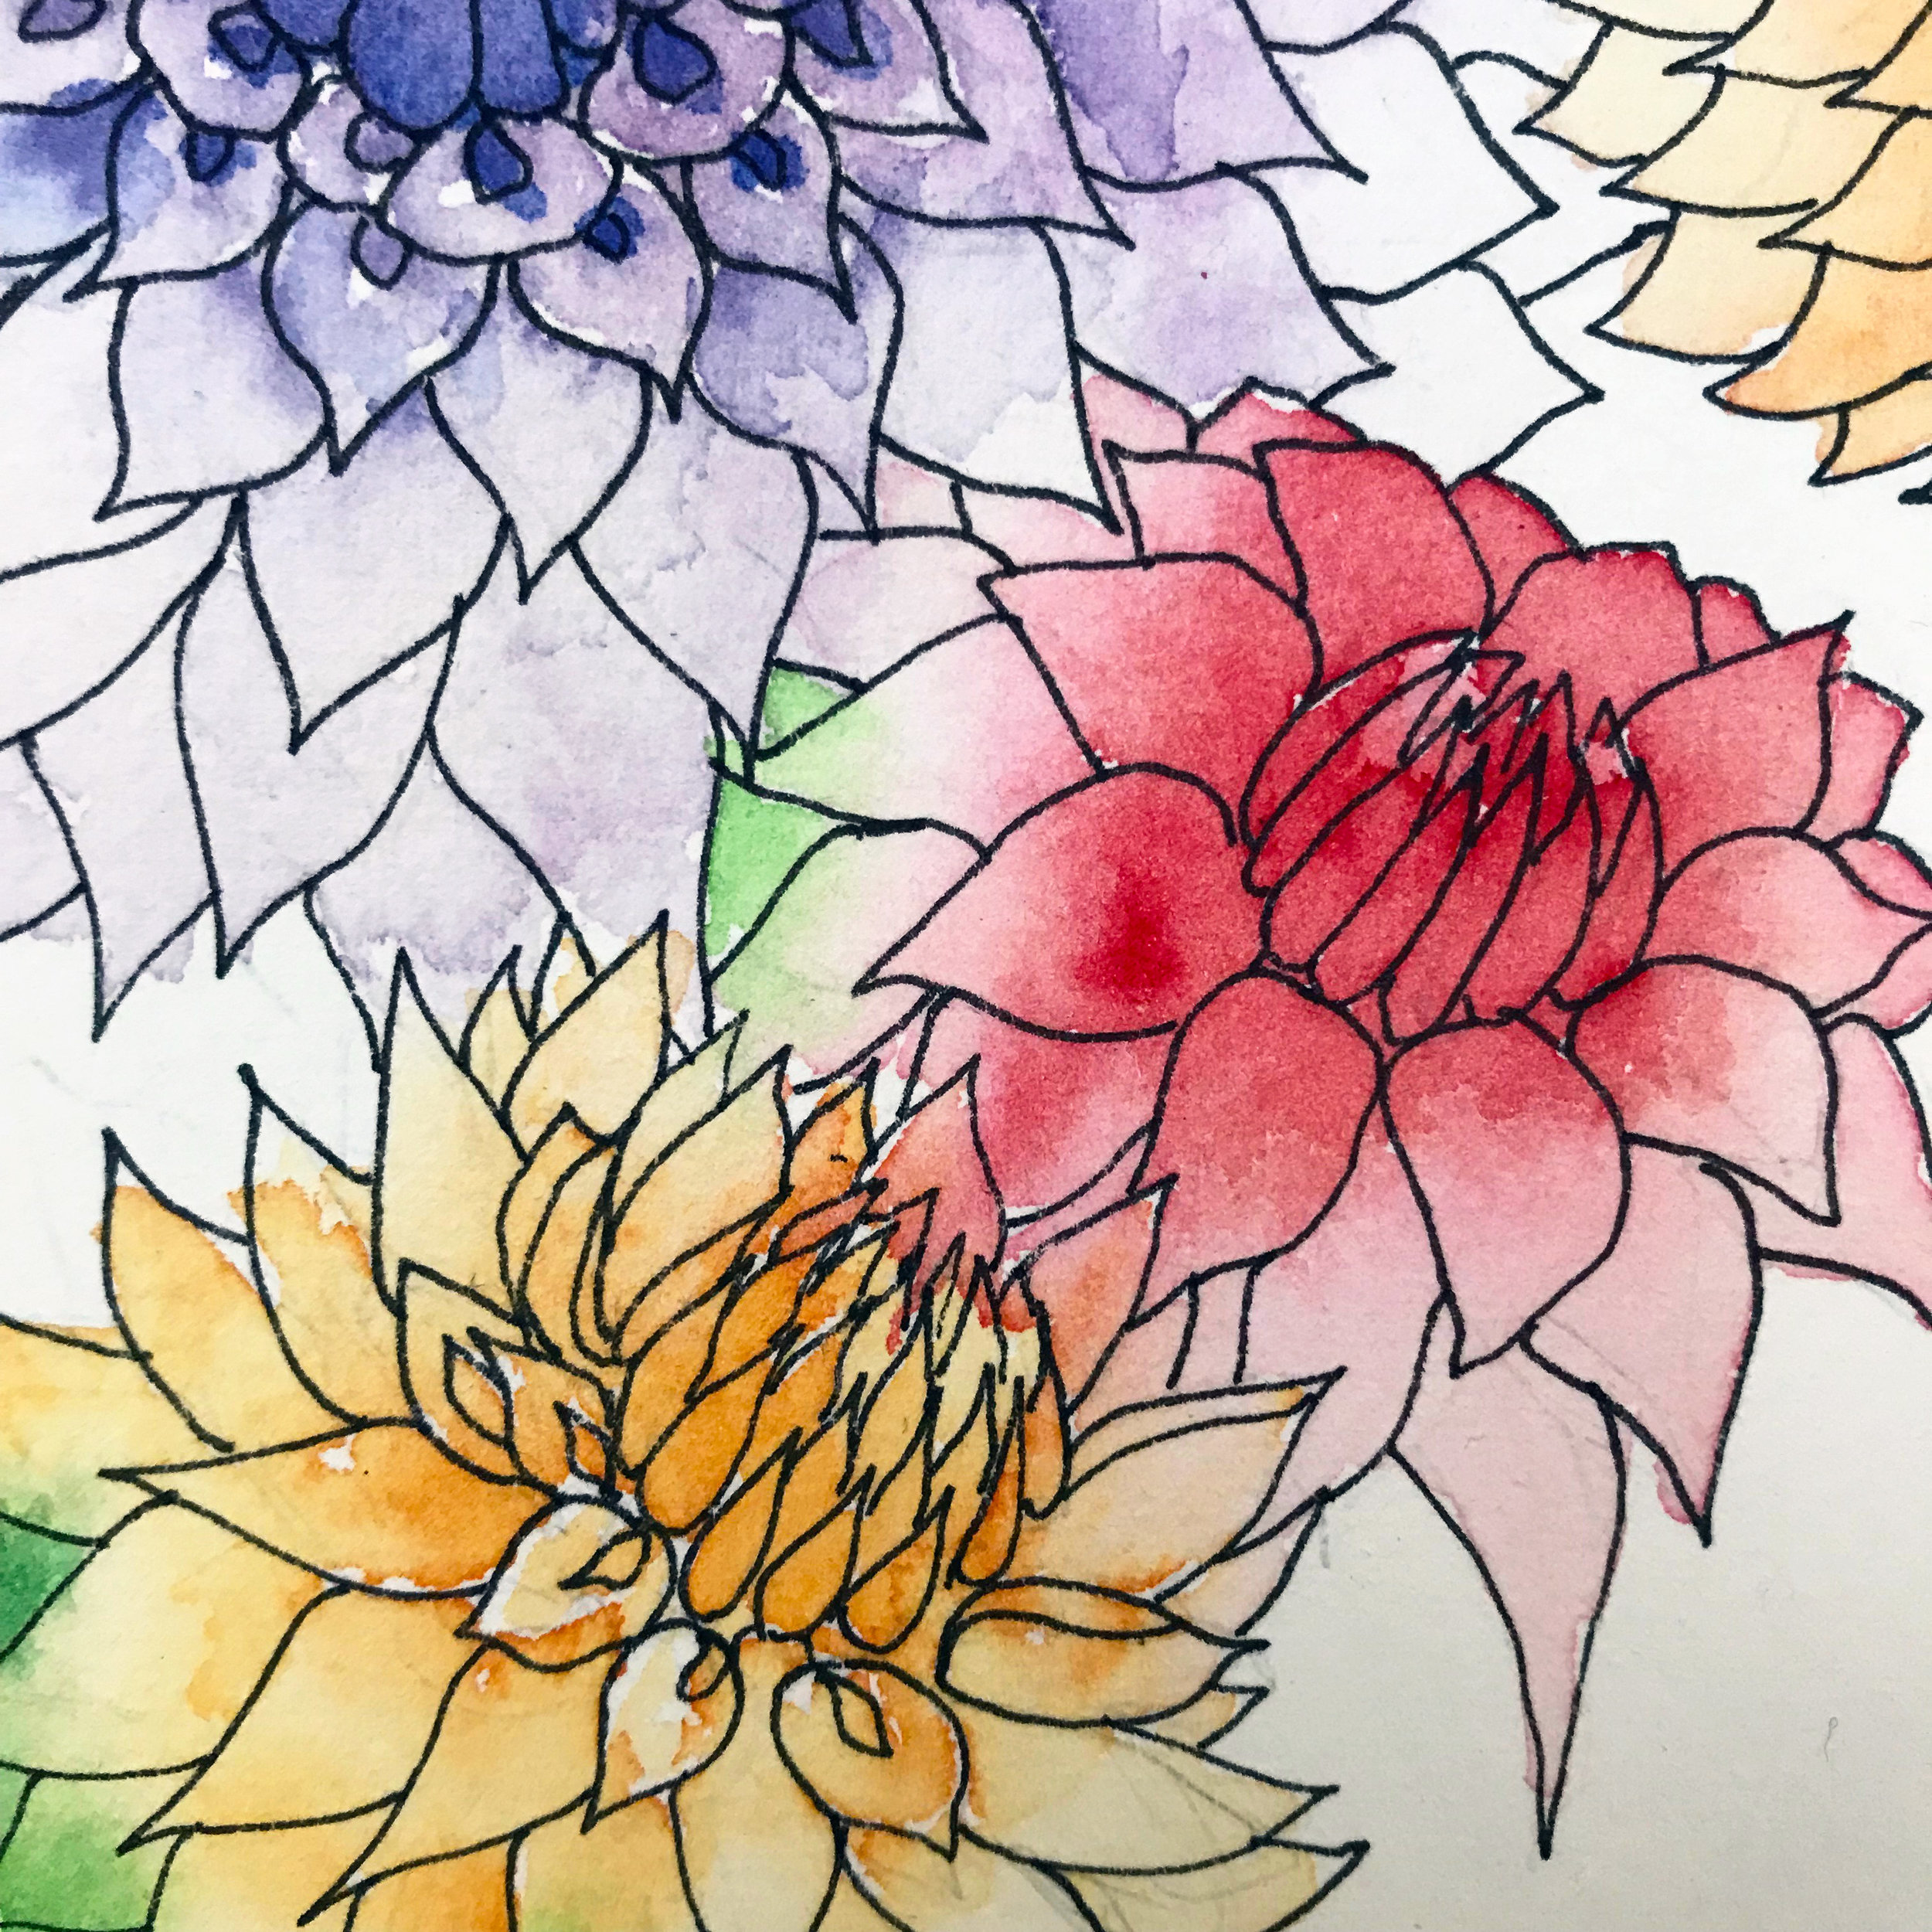 Using a hot press paper, the micron pen goes on very smoothly and the pigment of the watercolors gently blend as the paper absorbs water quickly, by danielleandco.com